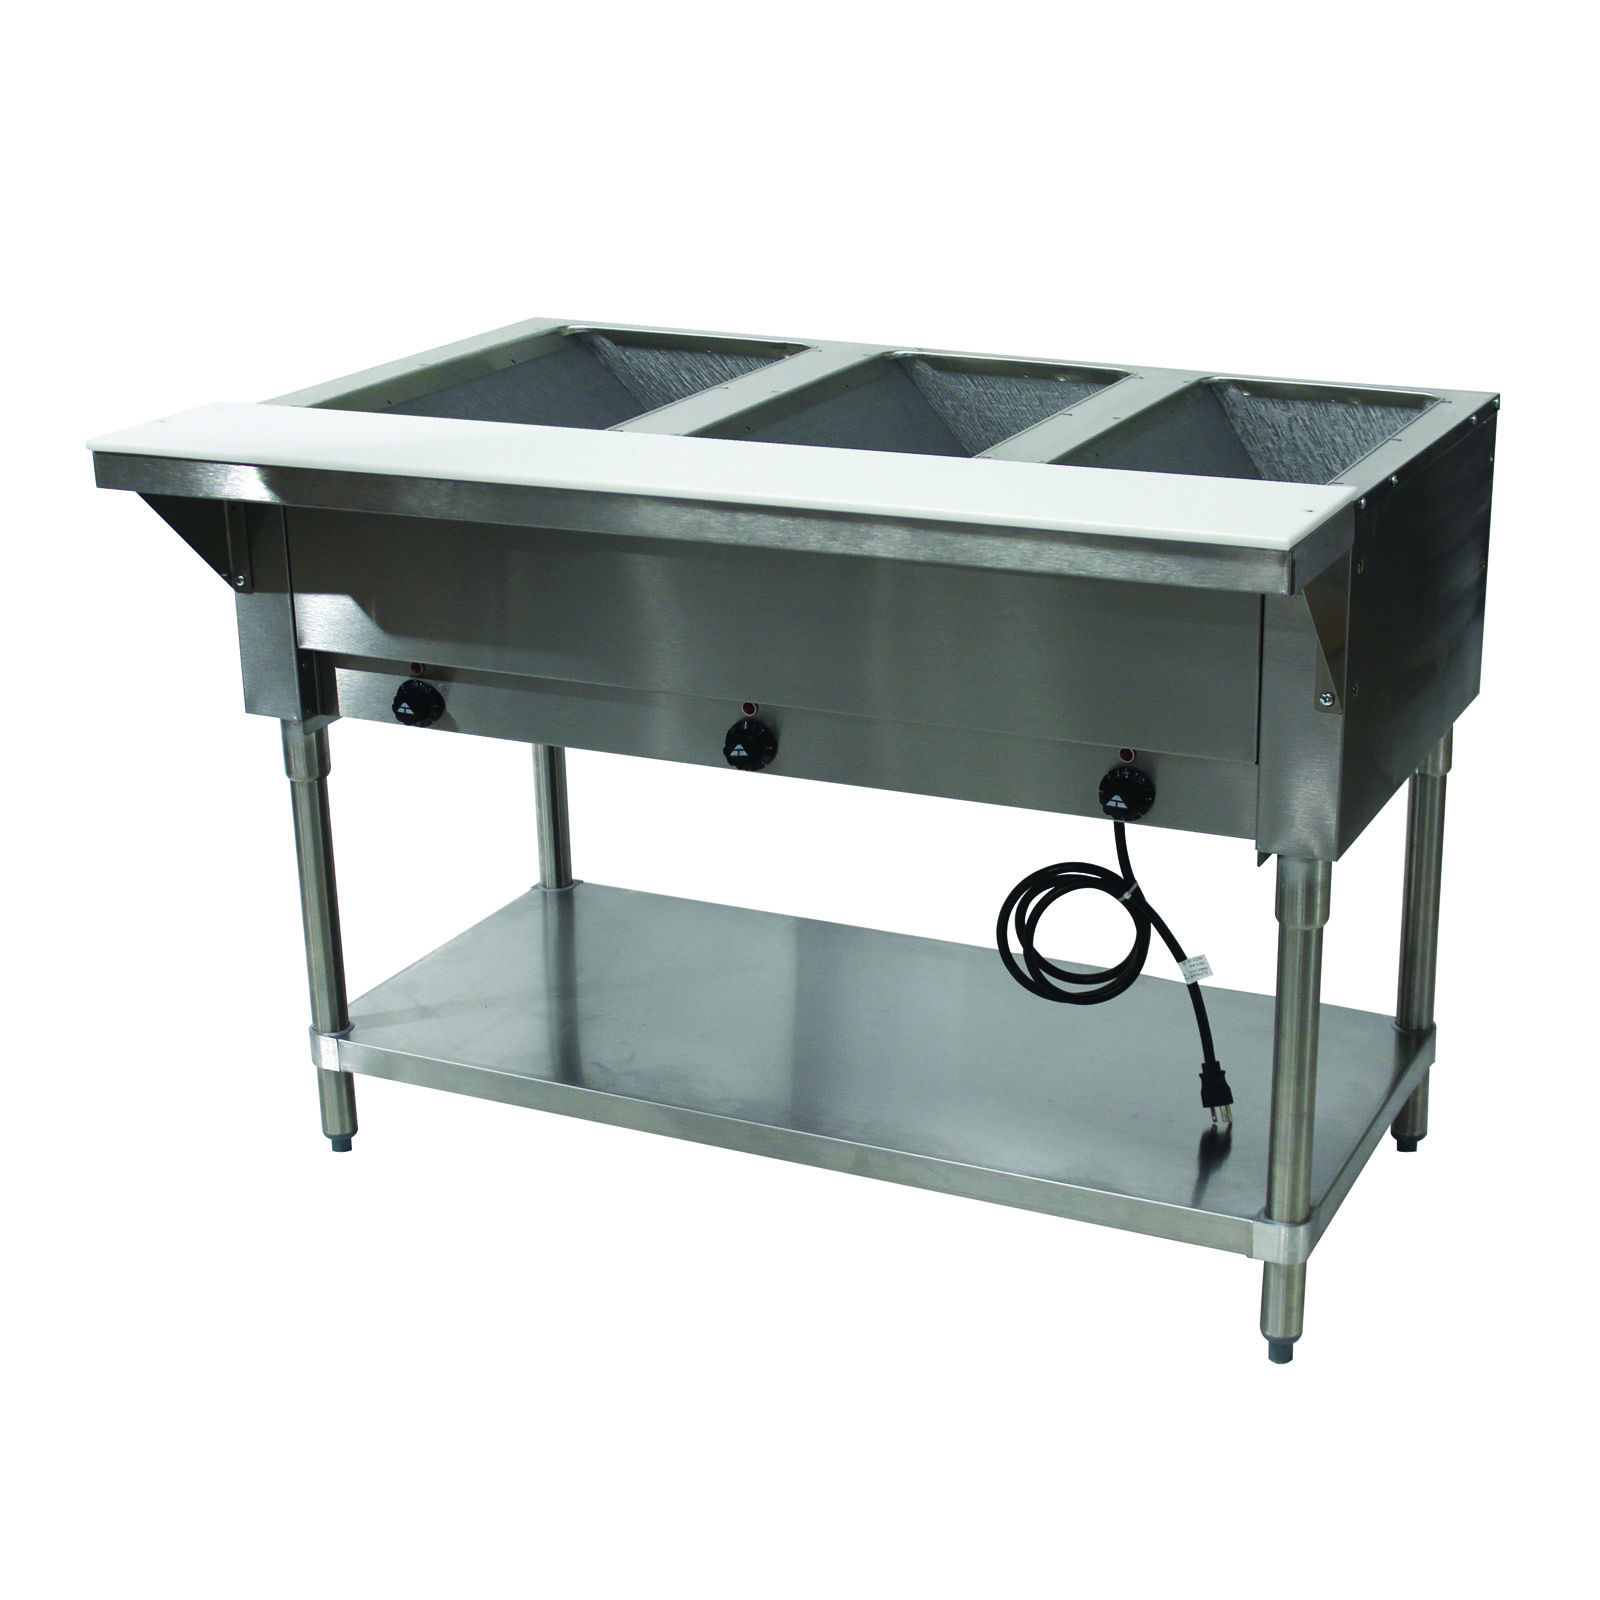 Advance Tabco HF-3E-240 serving counter, hot food, electric